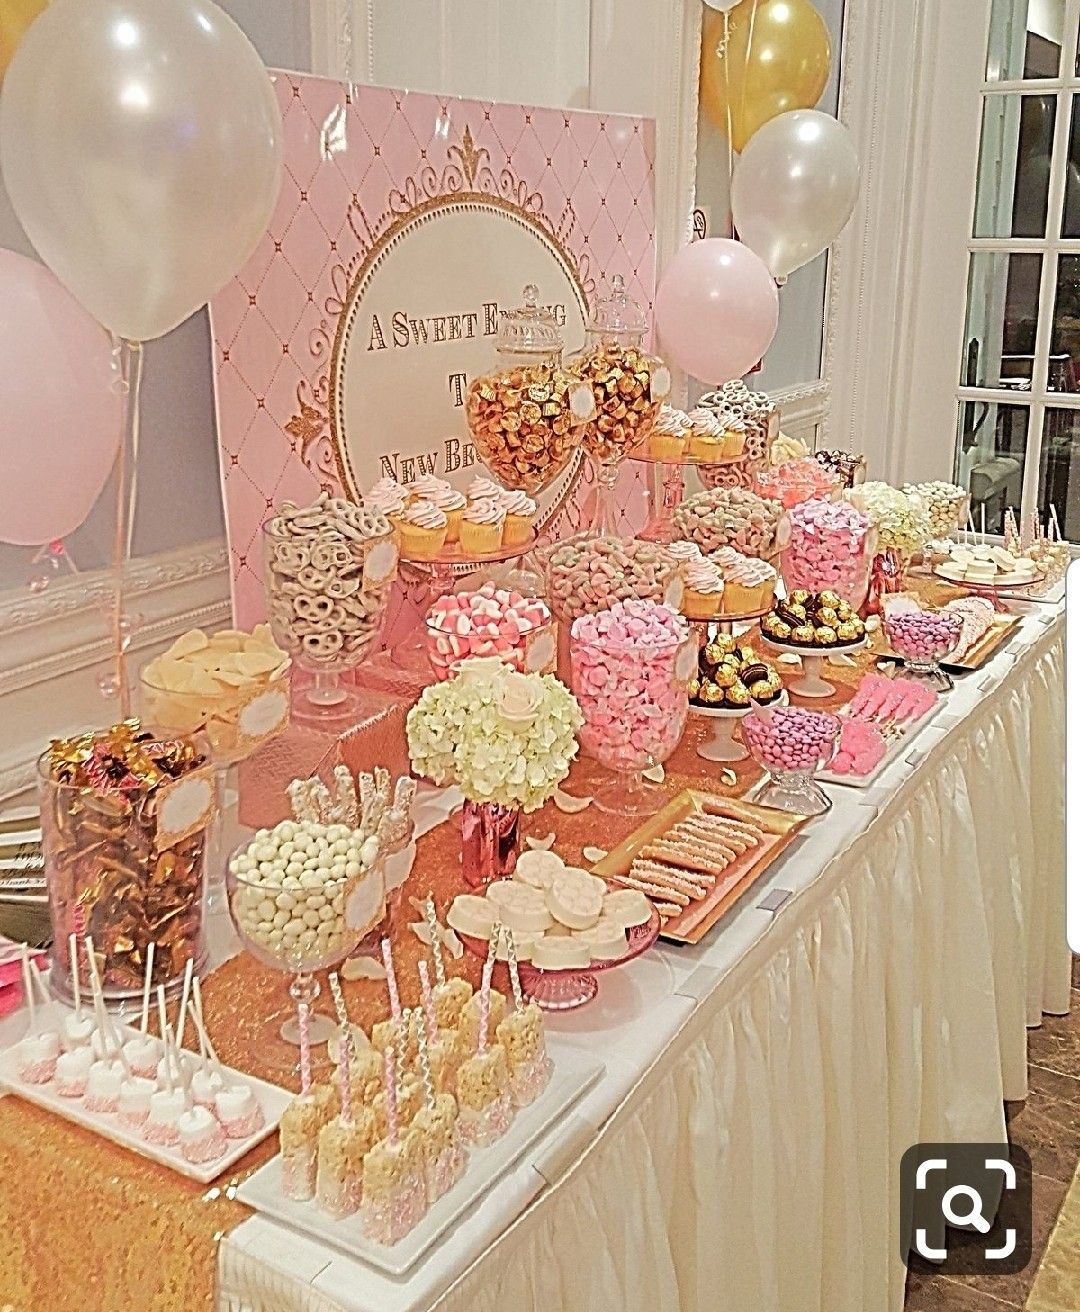 Pin By Sperry Wild On Tah Via And Tories Wedding Baby Shower Candy Table Pink Candy Table Baby Shower Candy